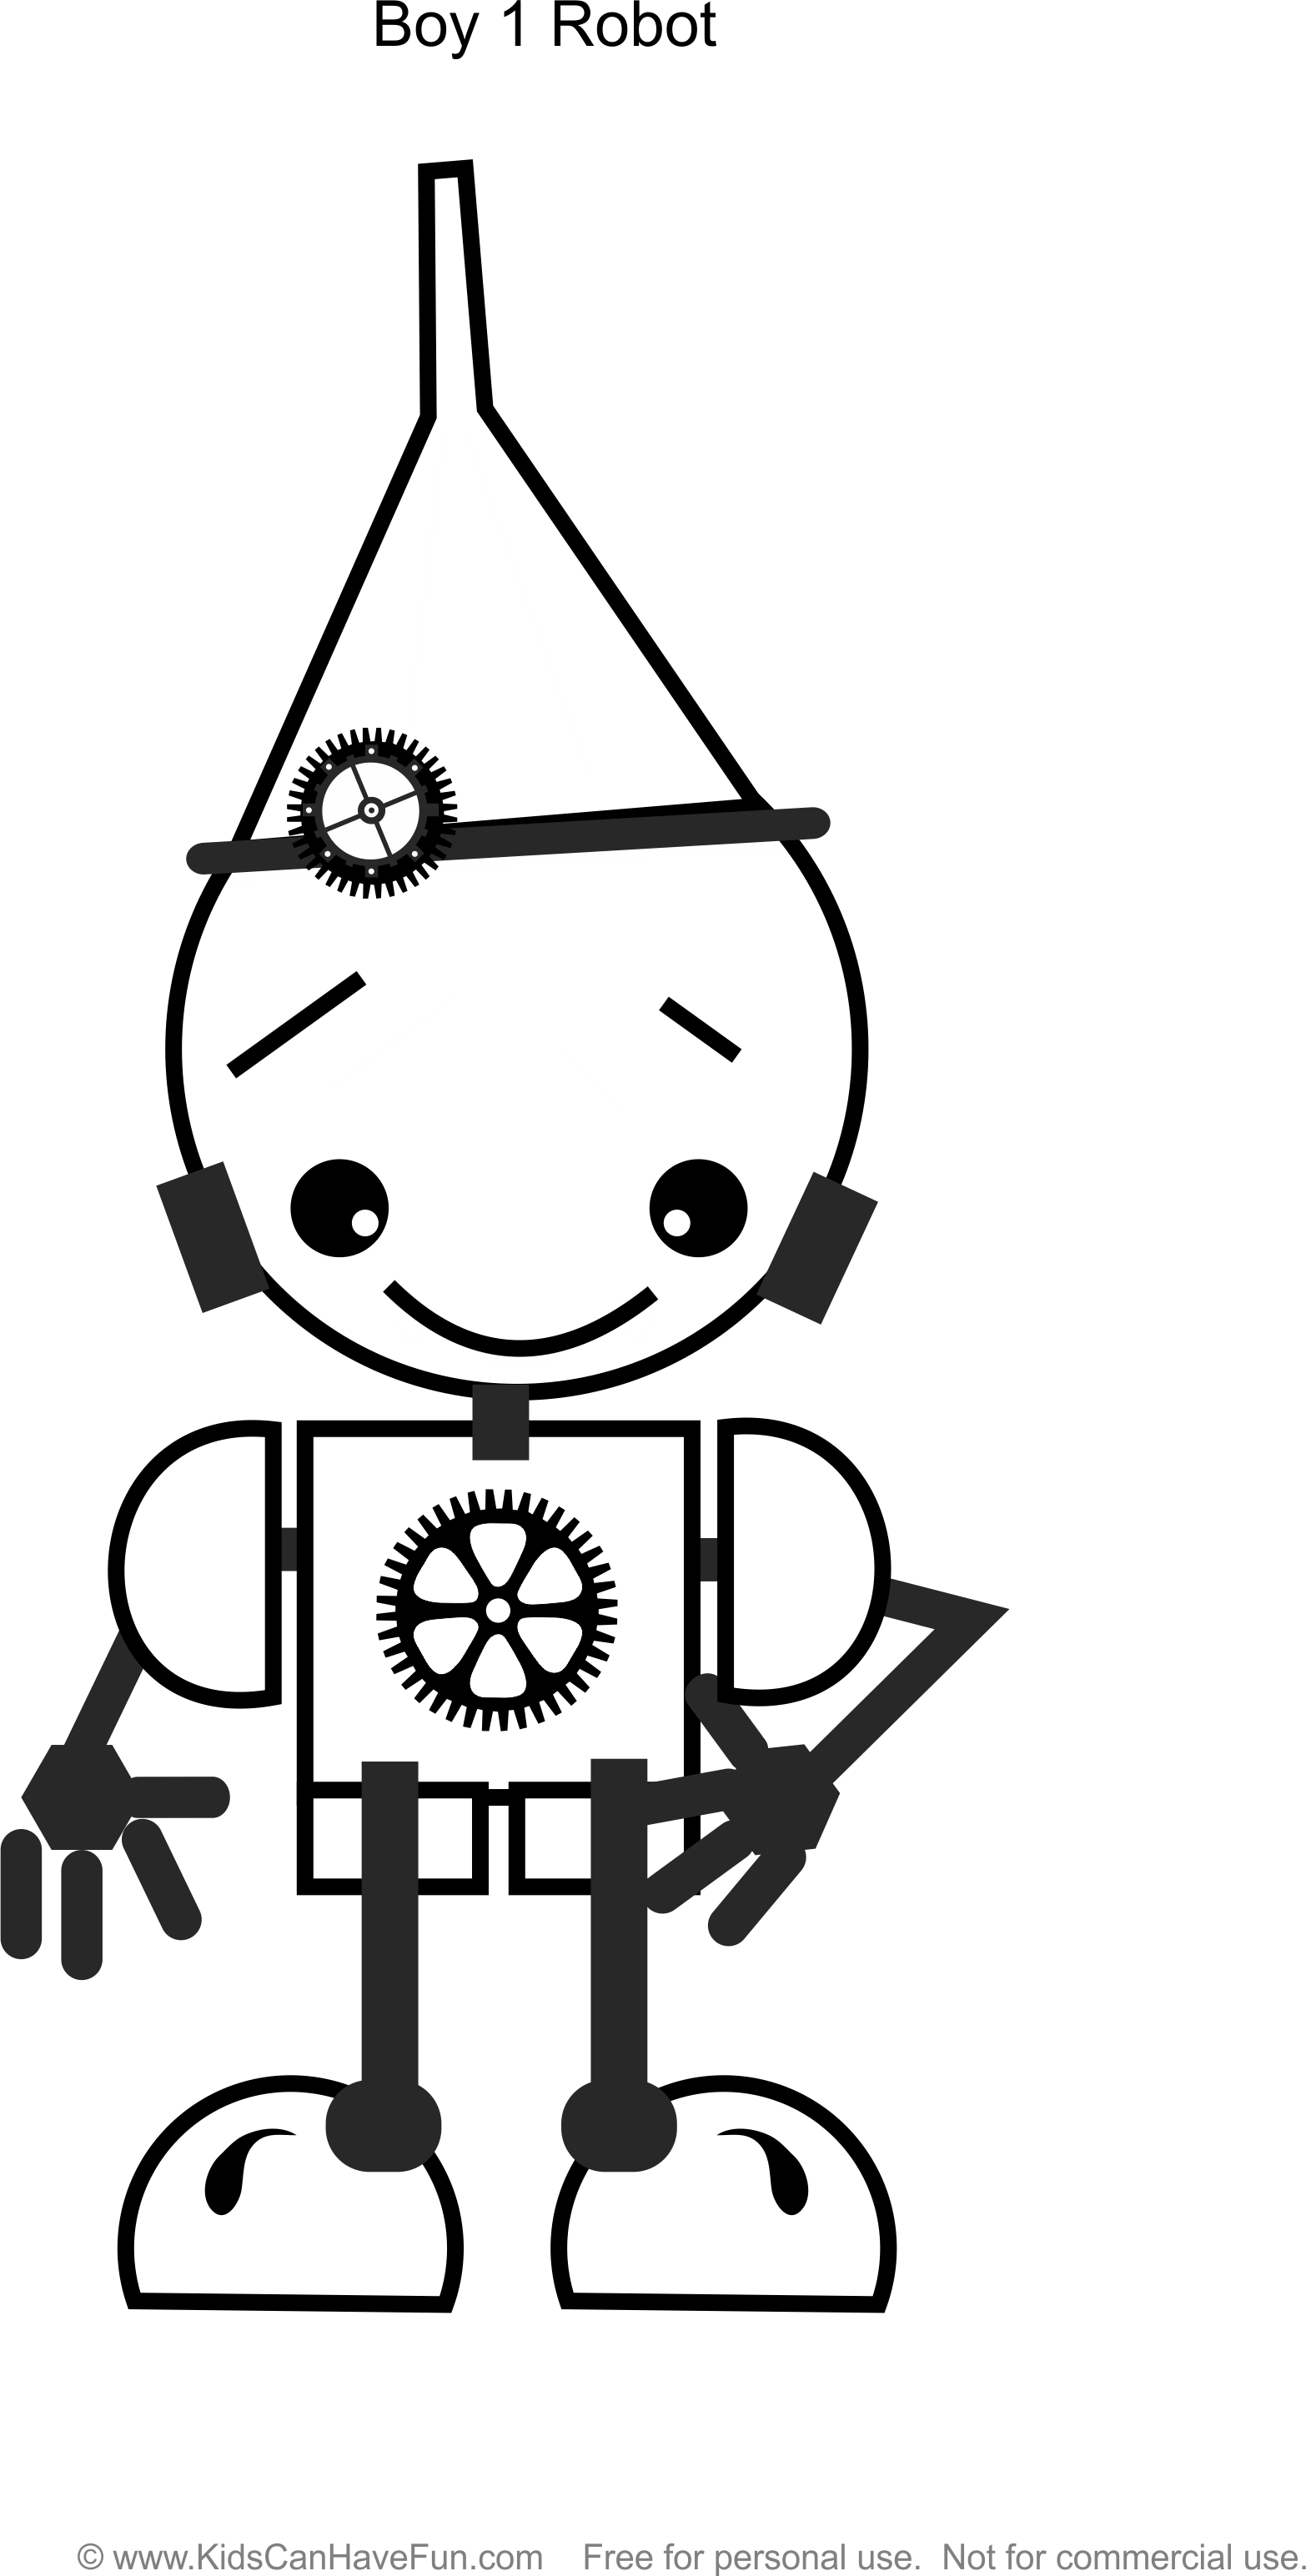 Boy 1 Robot Coloring Page Http Www Kidscanhavefun Com Robot Coloring Htm Robot Coloringbook Robots Drawing Science Fiction Art Retro Coloring Pages